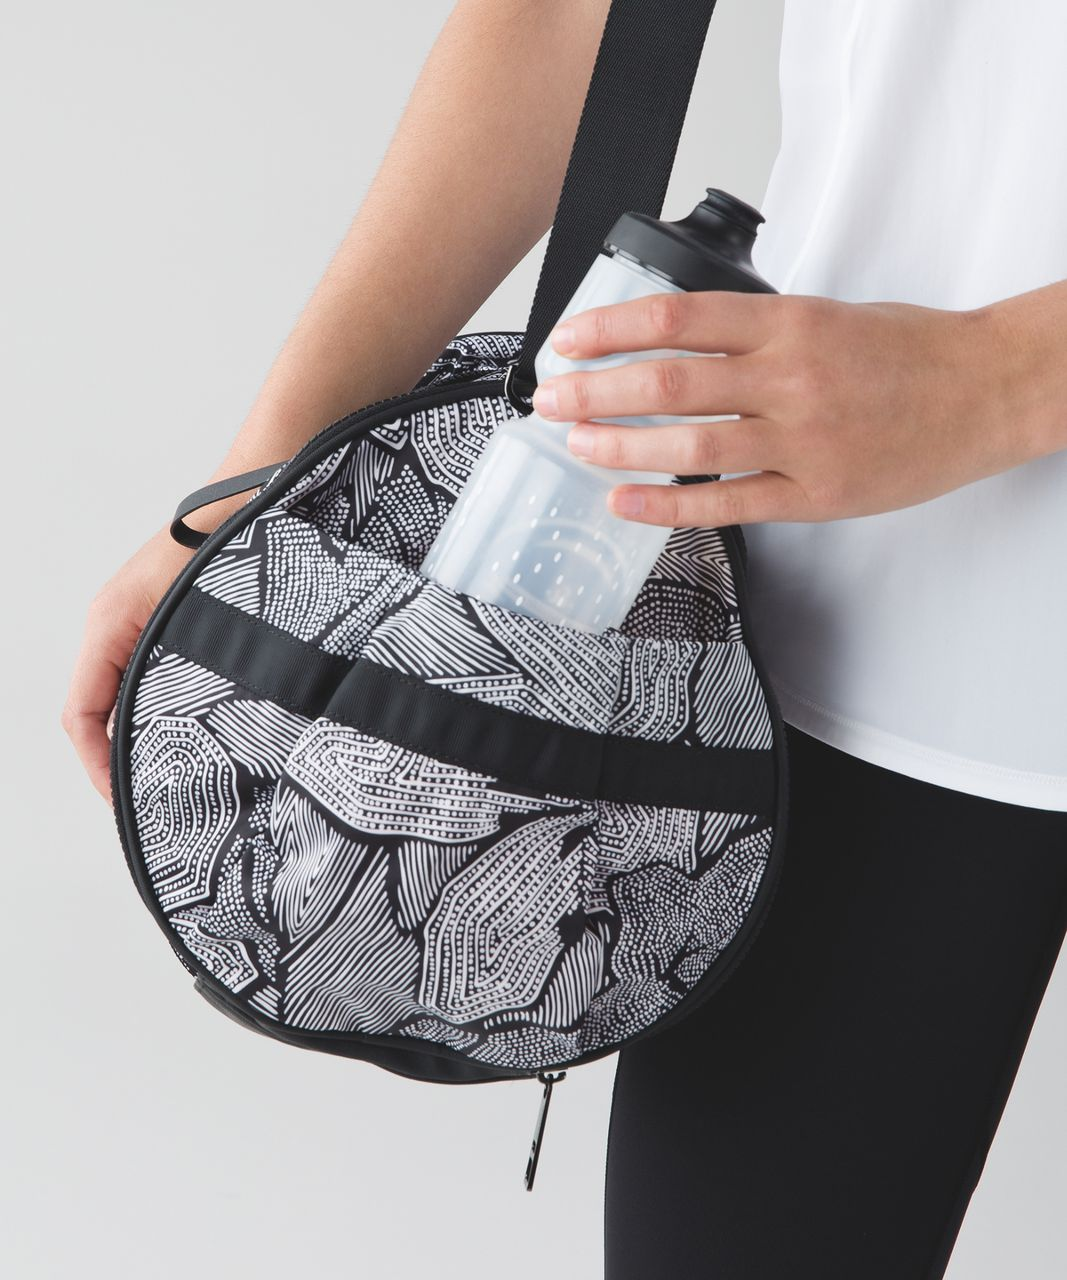 Lululemon Run Ways Duffel - Dottie Tribe White Black